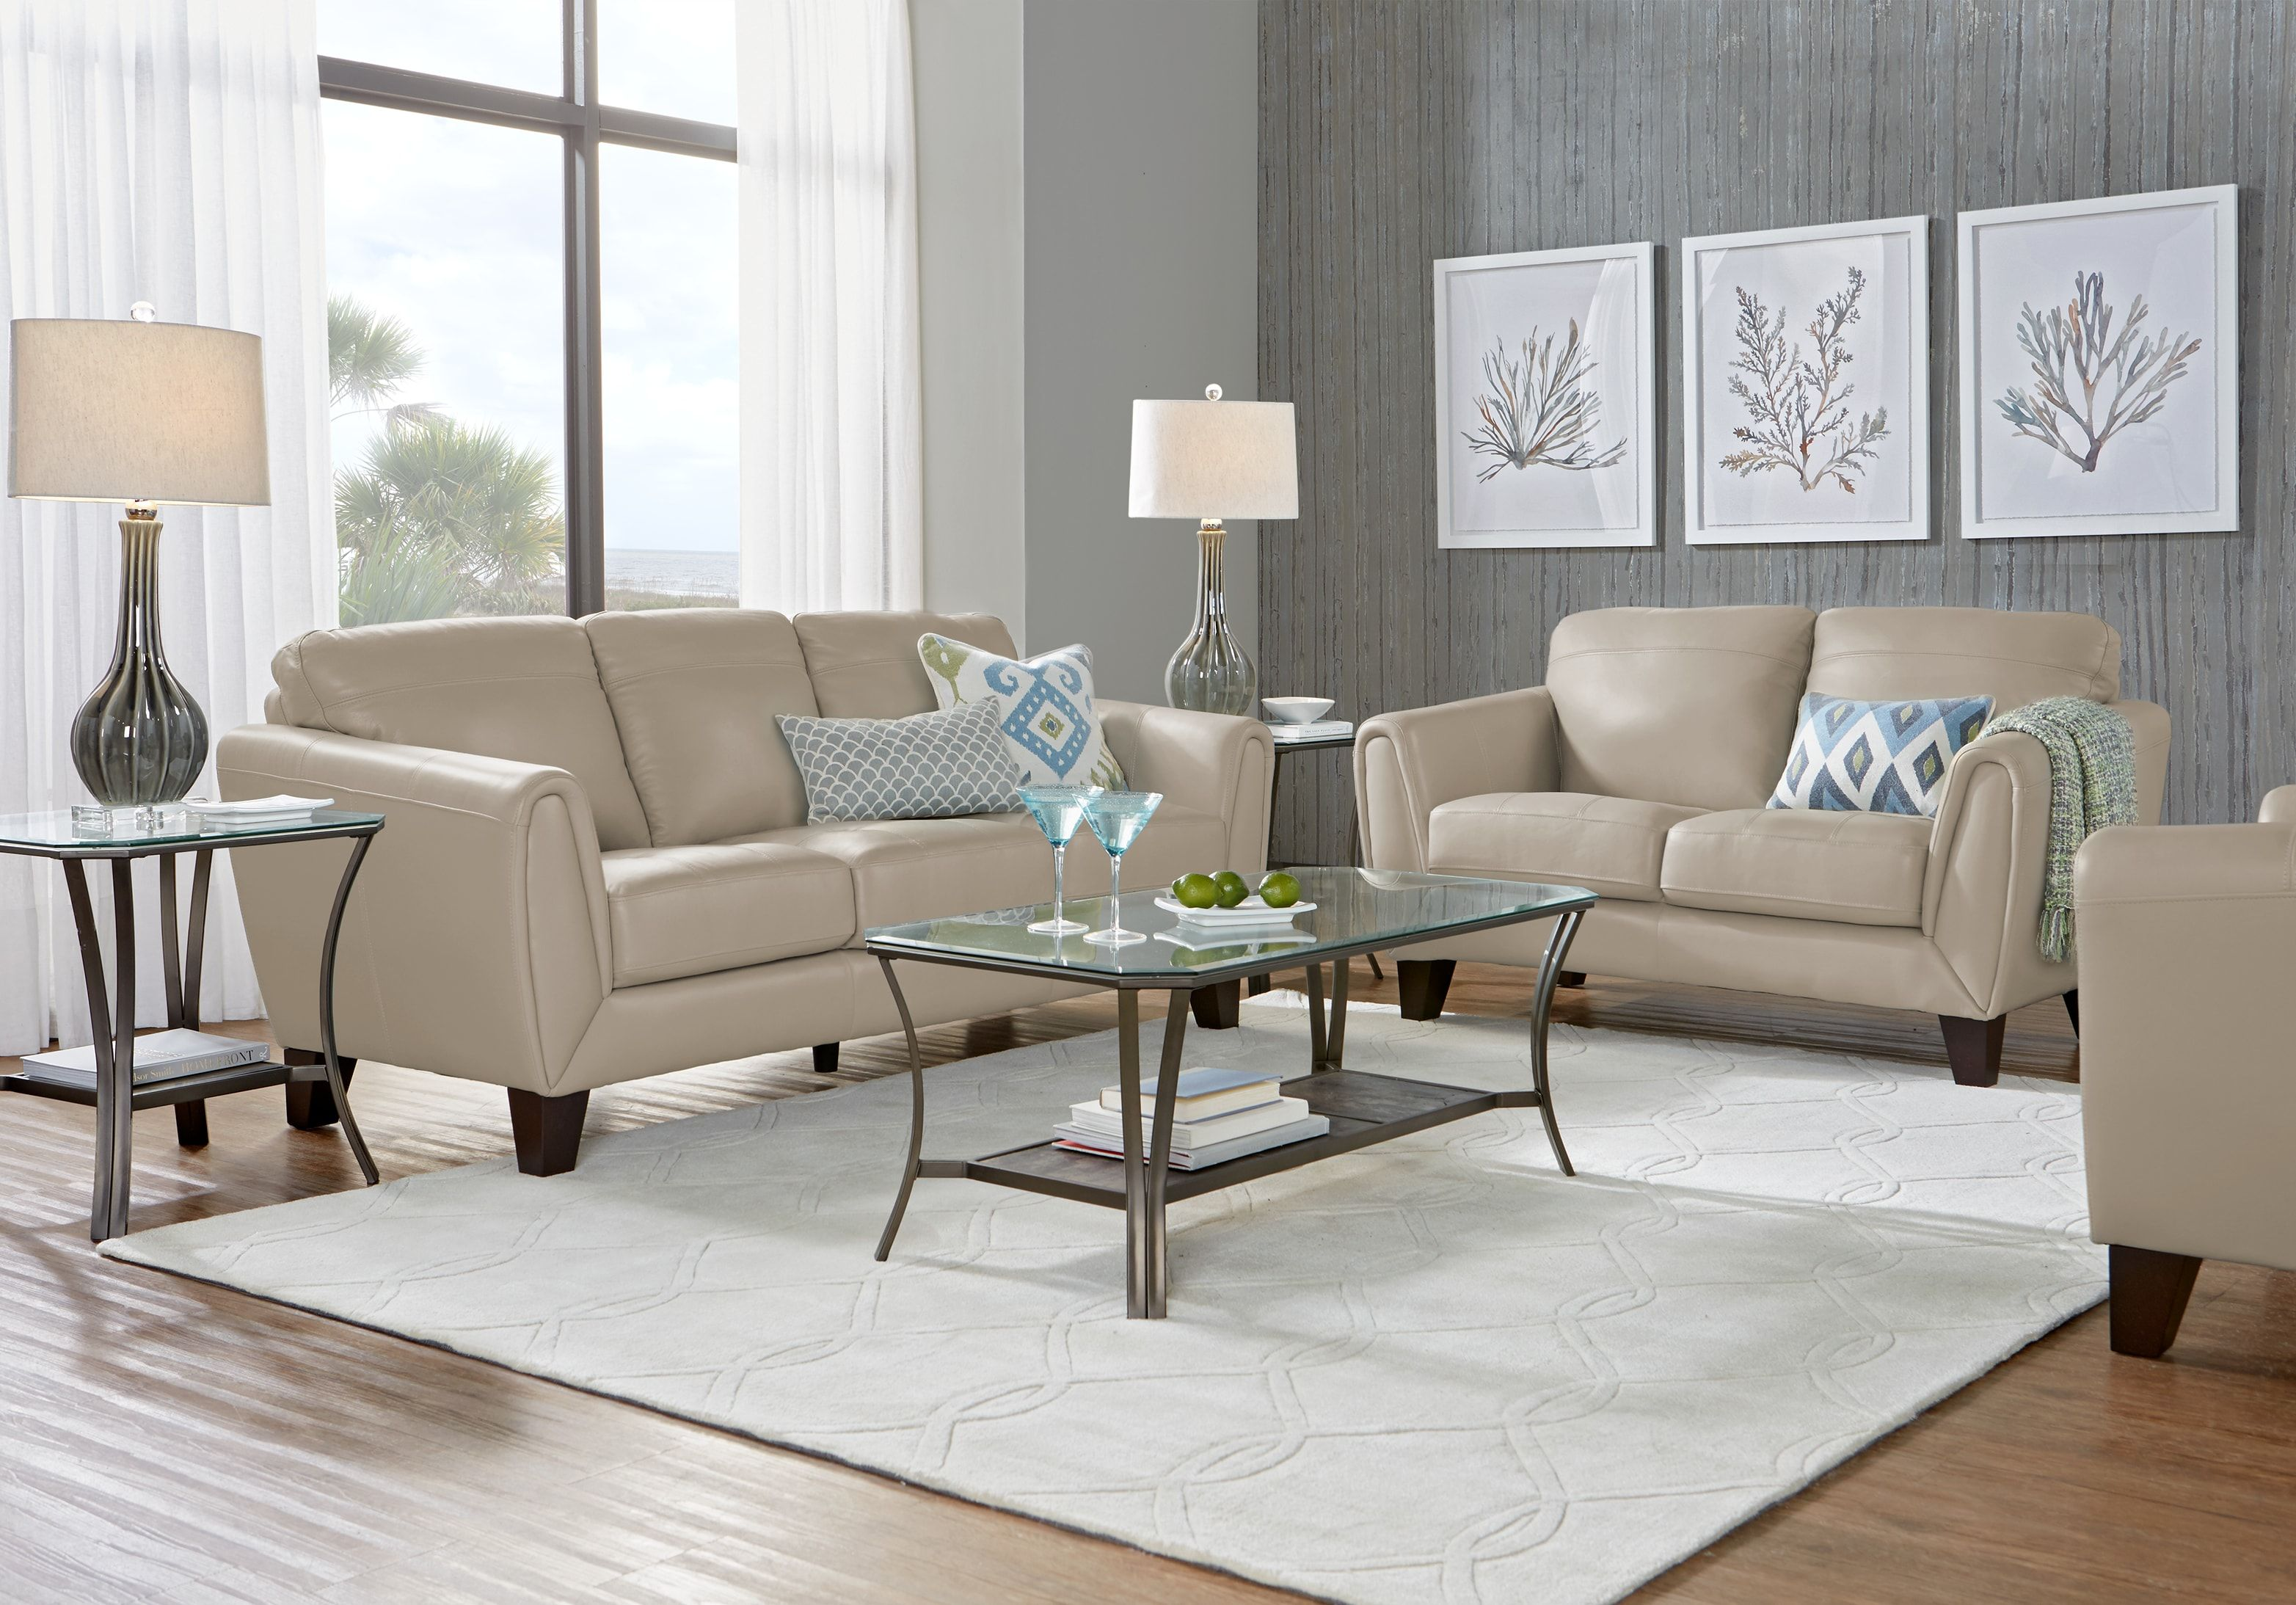 Livorno Beige Leather 3 Pc Living Room Leather Living Room Furniture Leather Living Room Set Living Room Sets